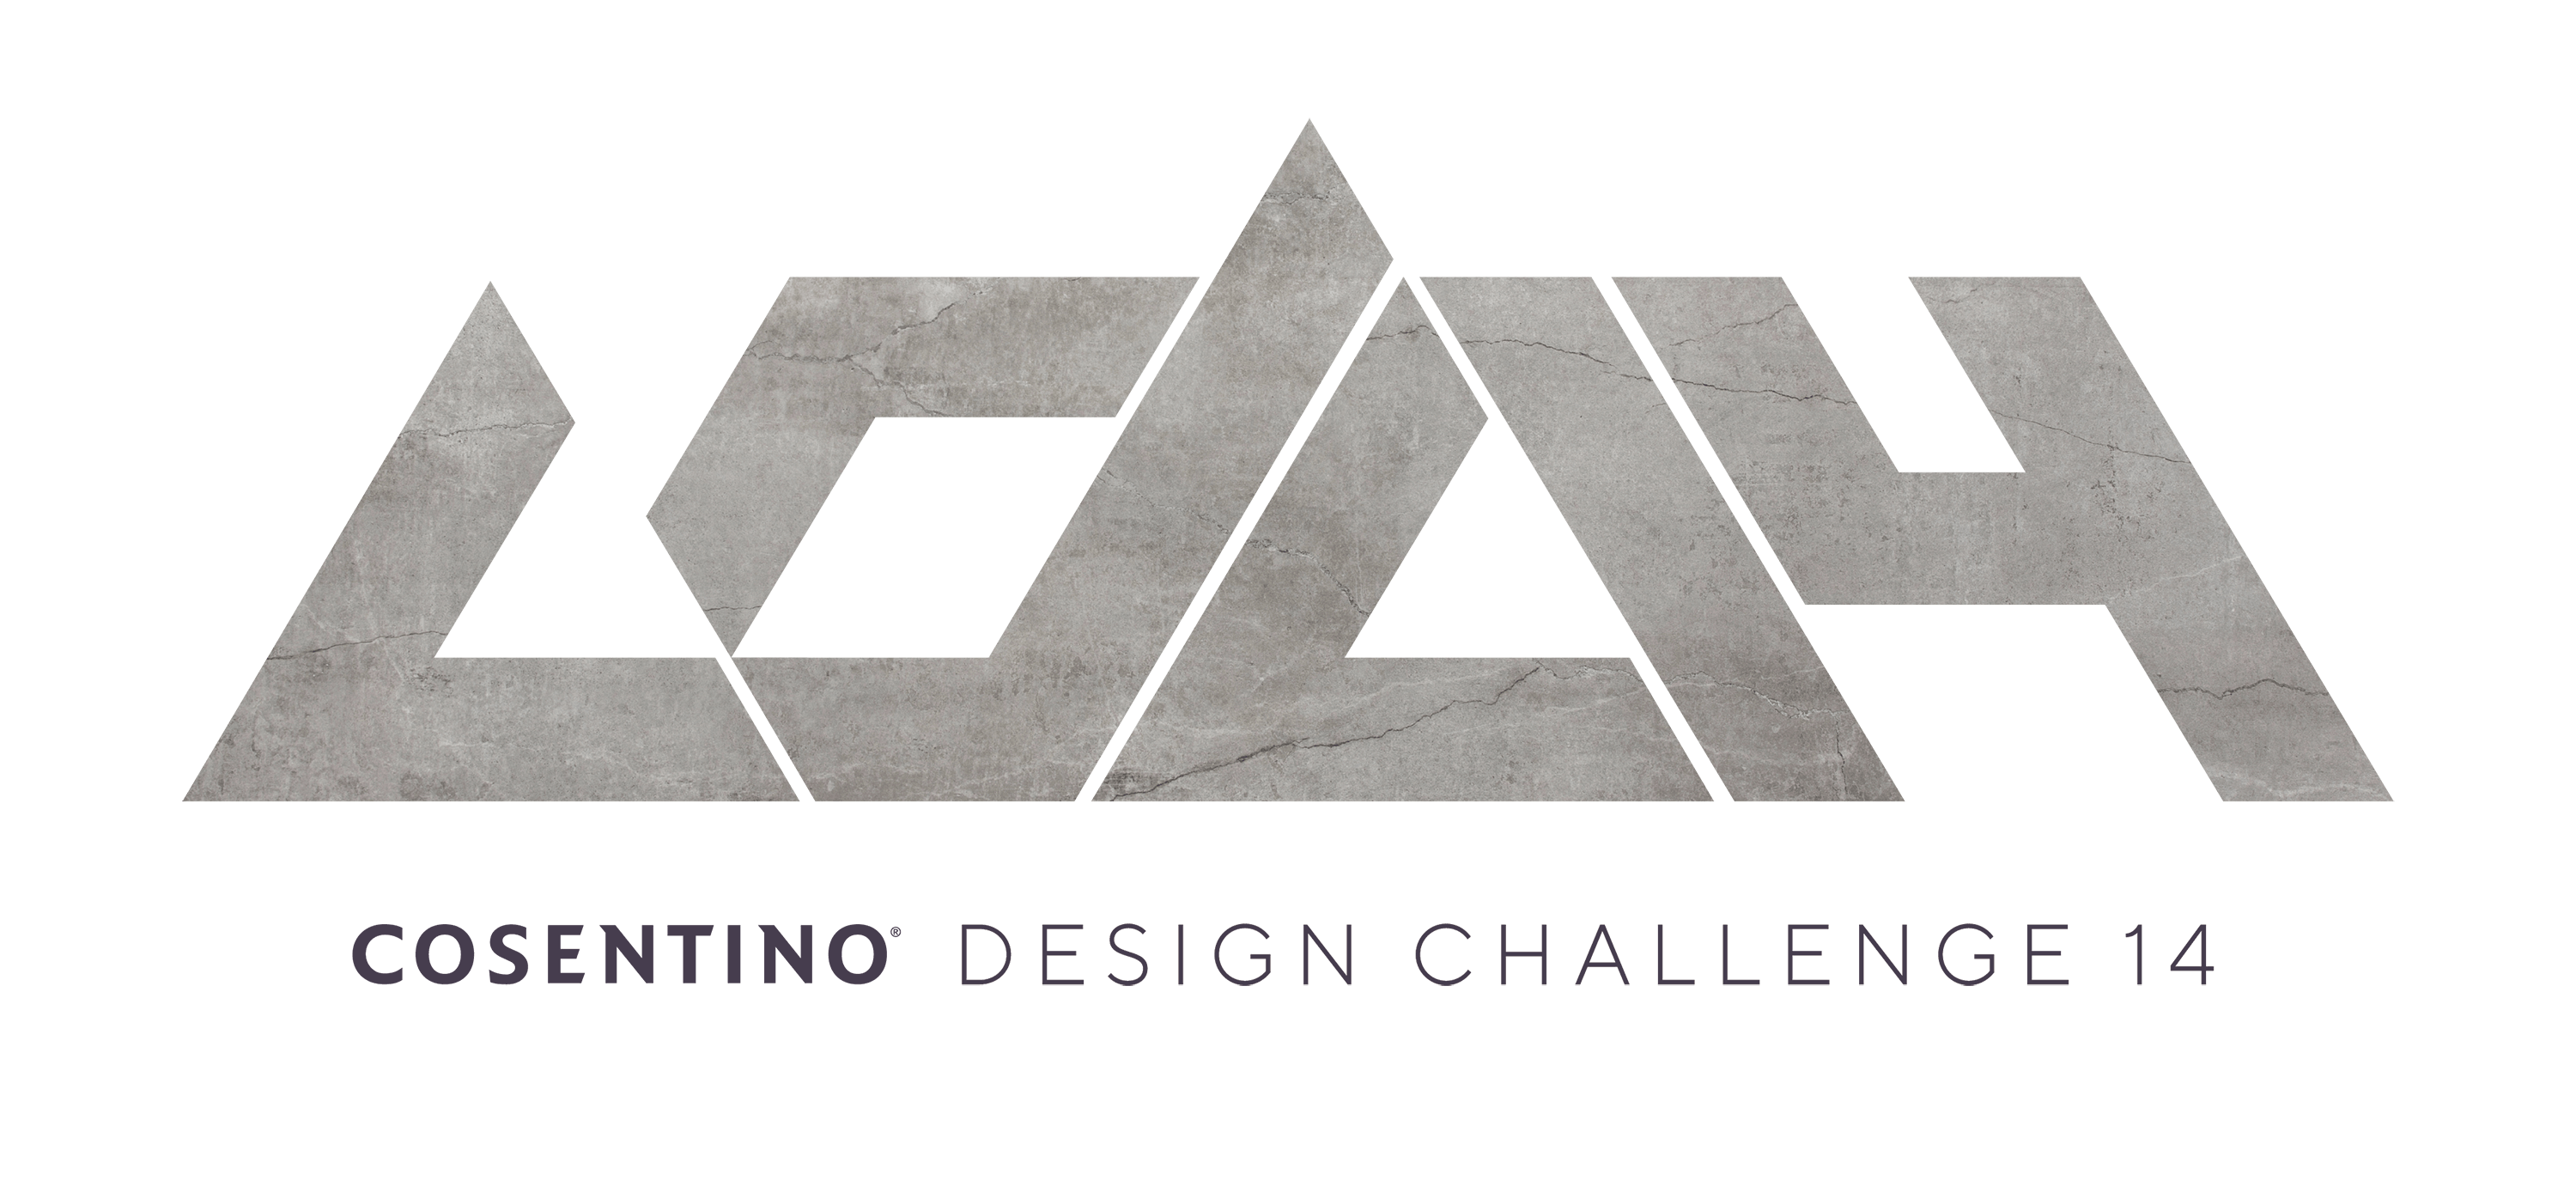 Image of LOGO CDC 14 Final 01 1 1 in Cosentino presents the 14th edition of the Cosentino Design Challenge - Cosentino